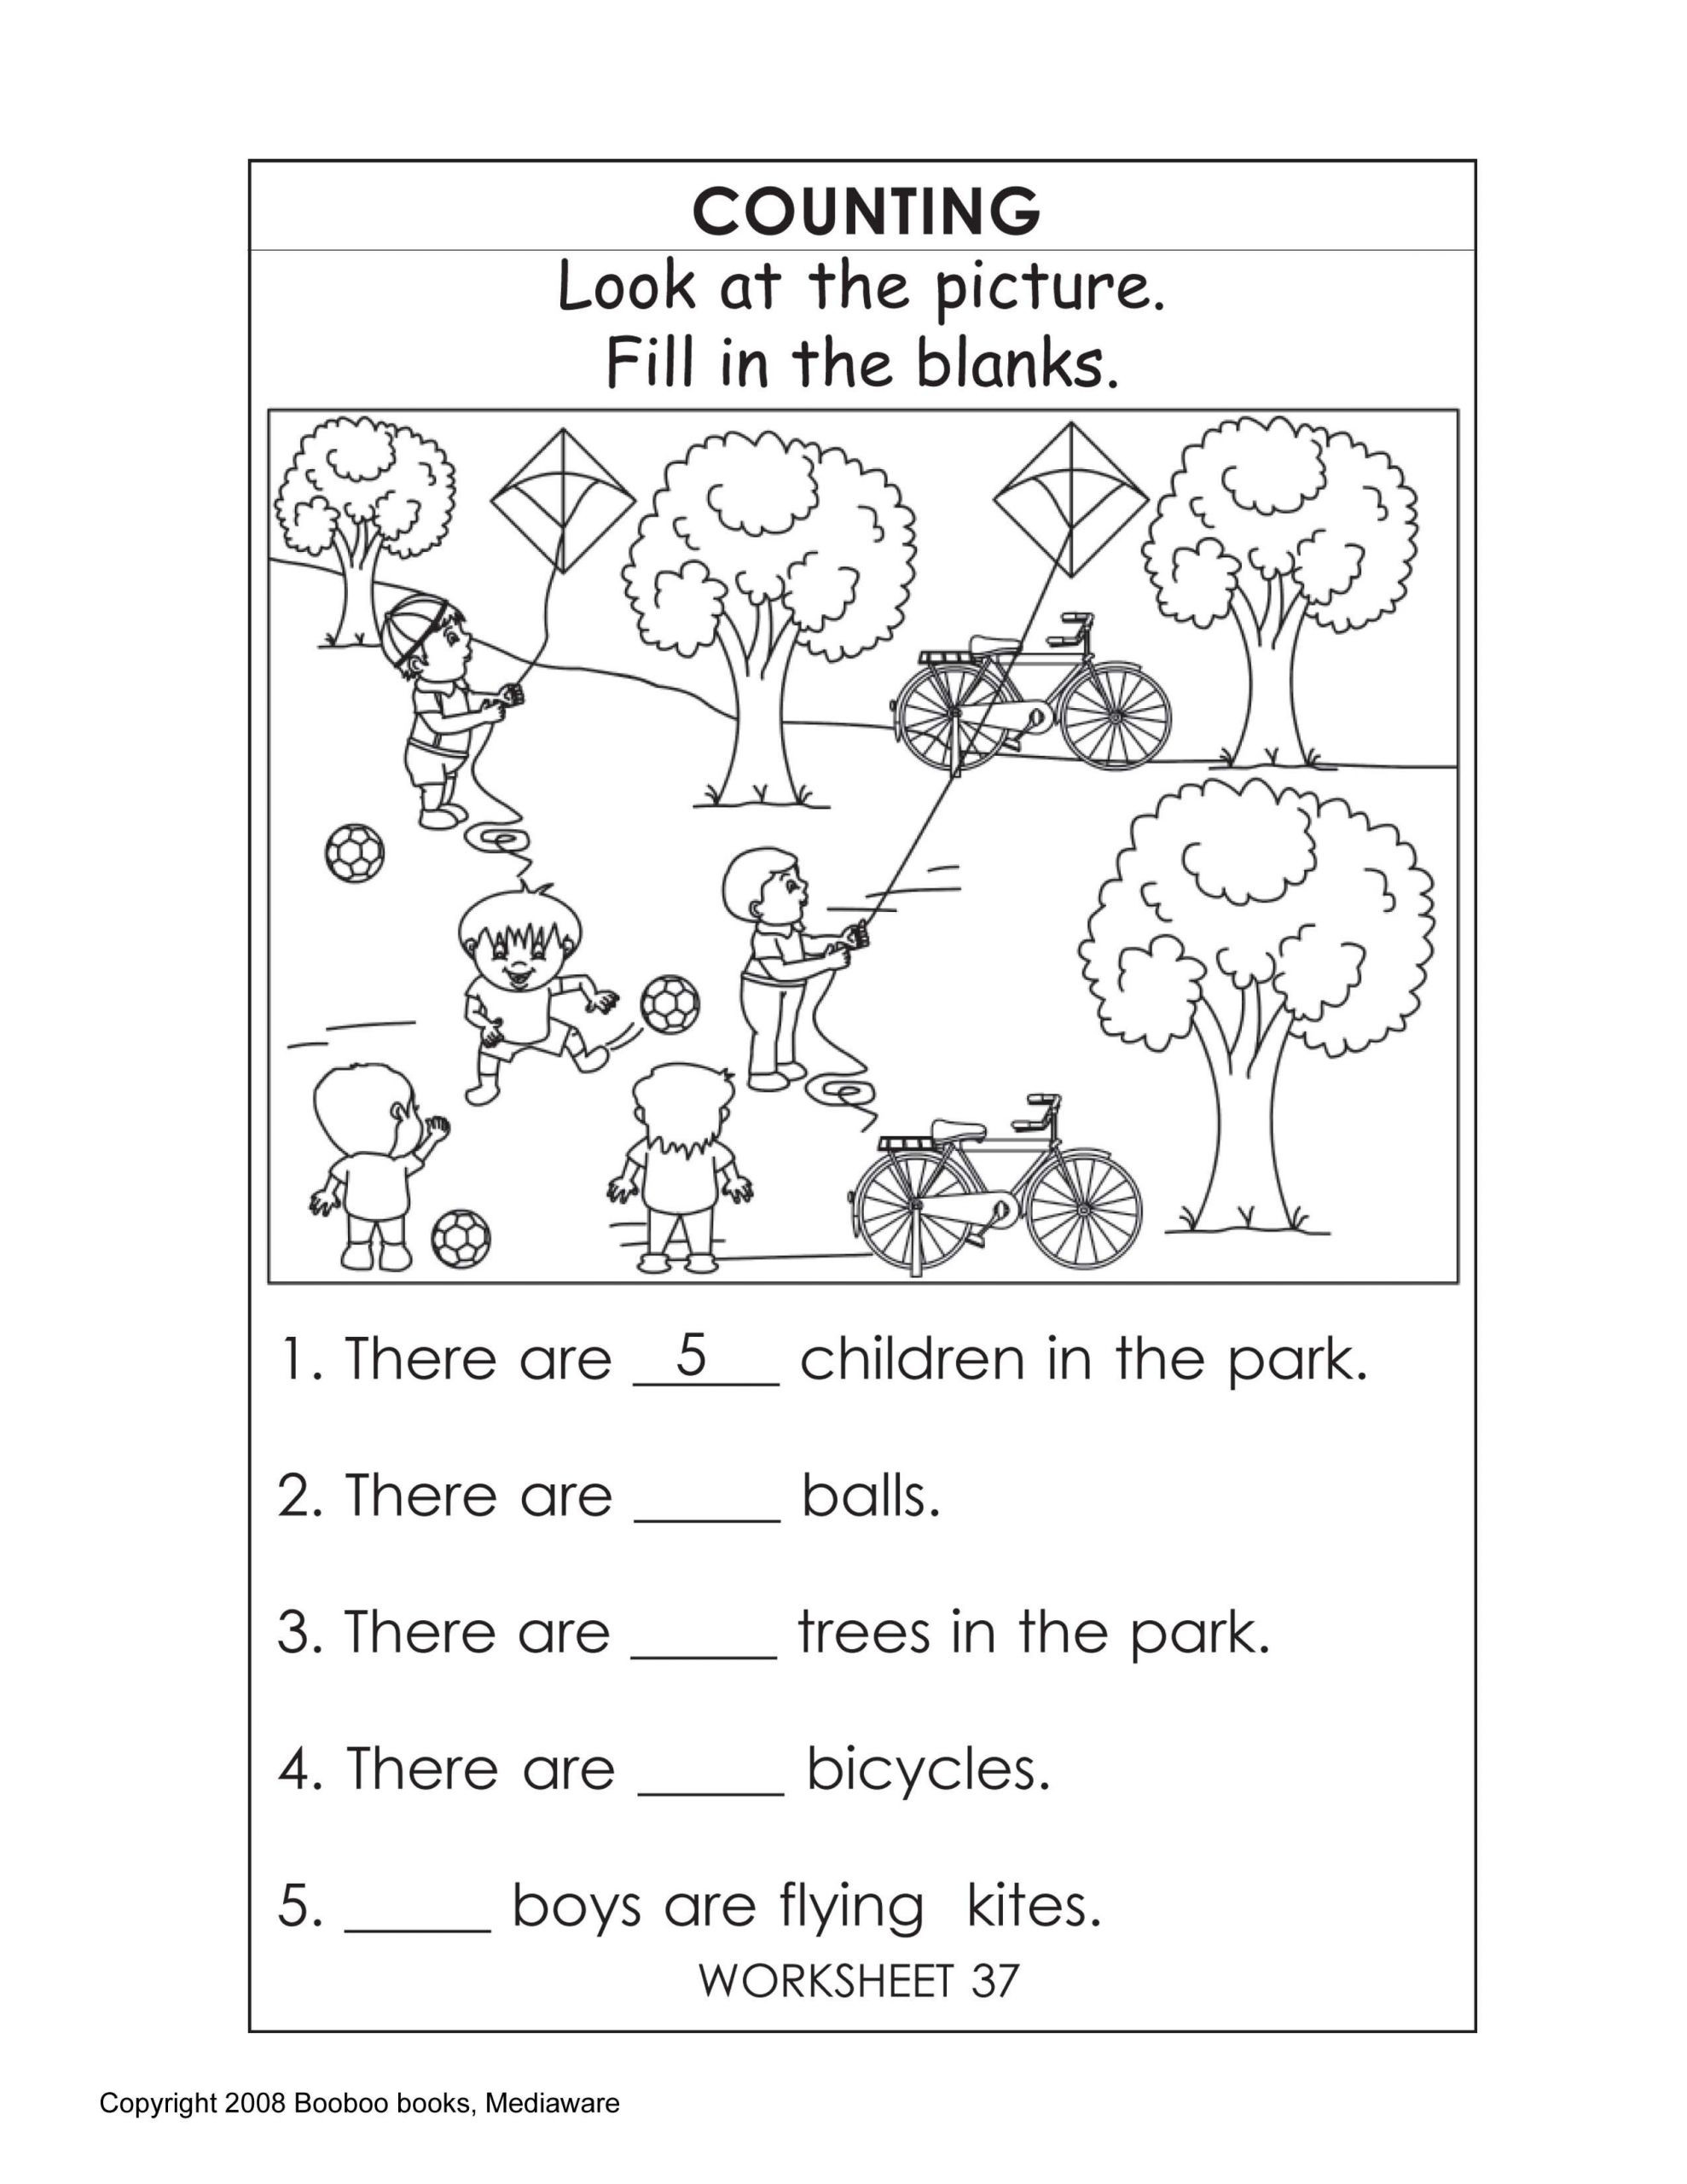 Conversion Worksheets 5th Grade Apocalomegaproductions Conversion Worksheets Grade